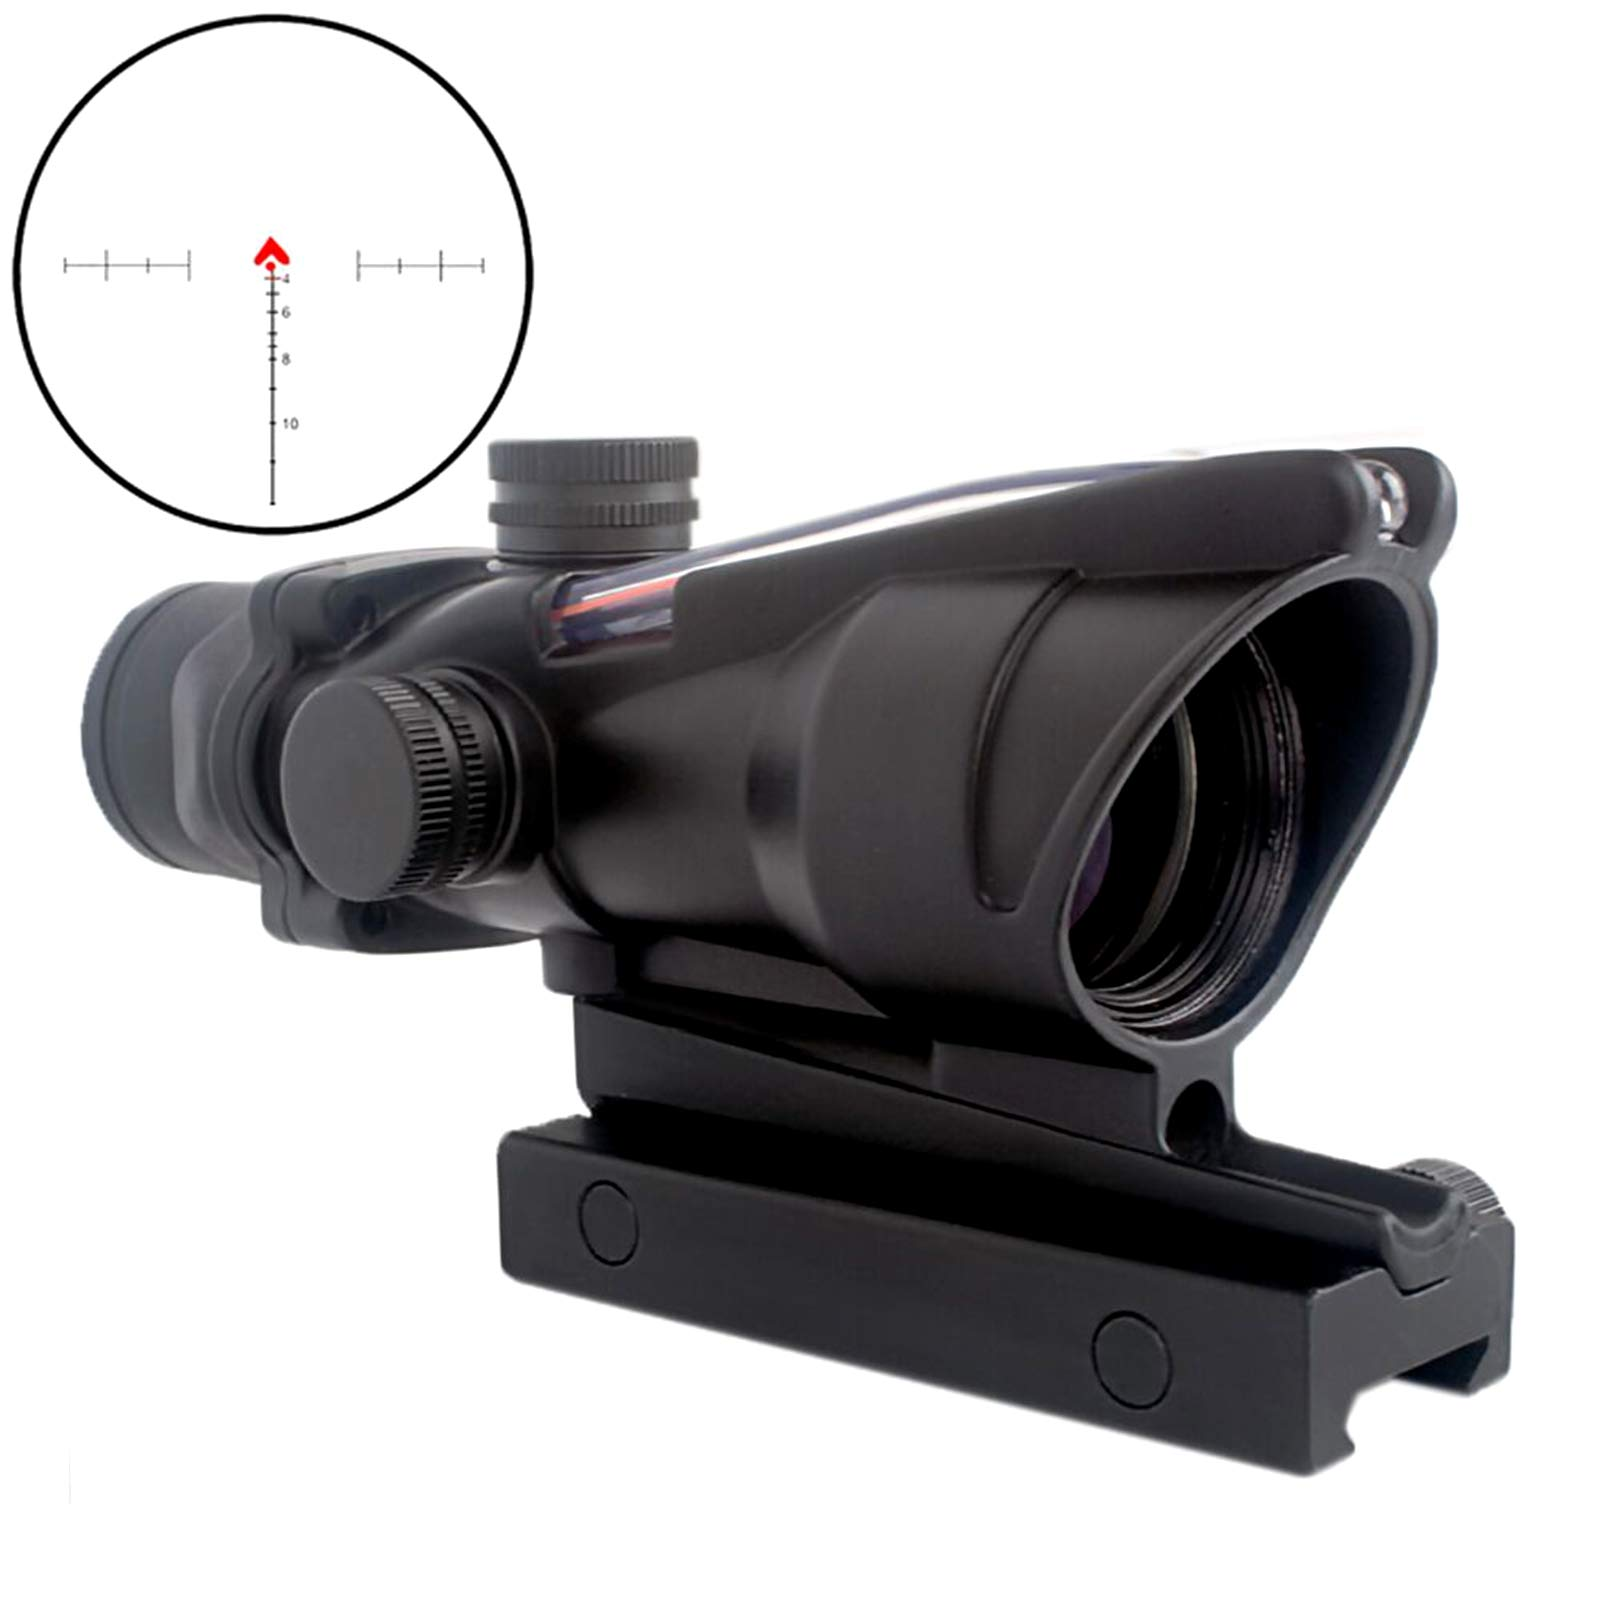 CRUSHUNT 4x32 Scope Hunting RifleScopes Red Chevron Glass Etched Reticle Real Fiber Optics Tactical Optical Sights Scope by CRUSHUNT